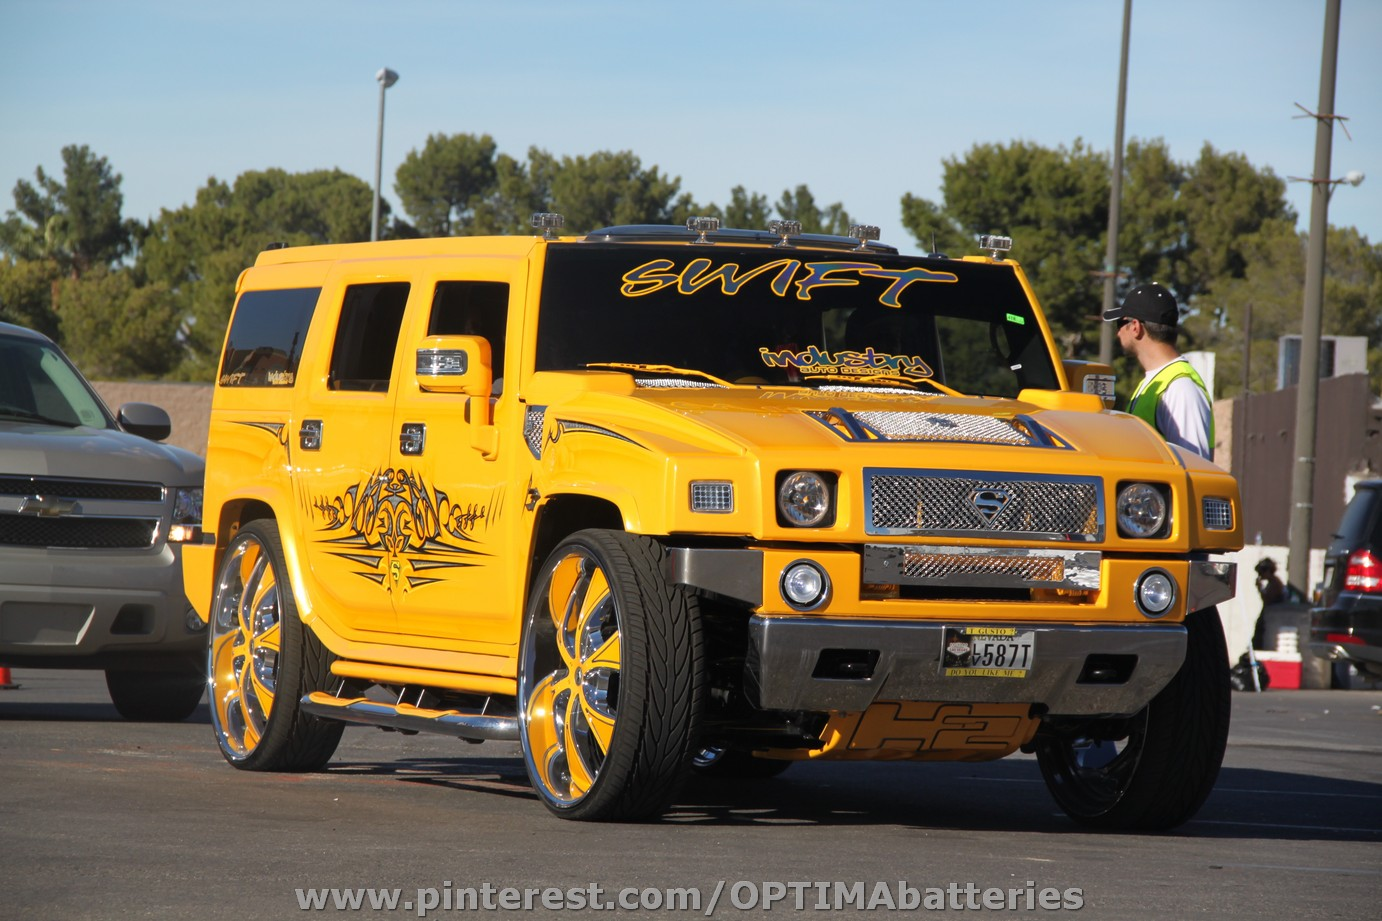 Does OPTIMA Make a Battery for the Hummer?